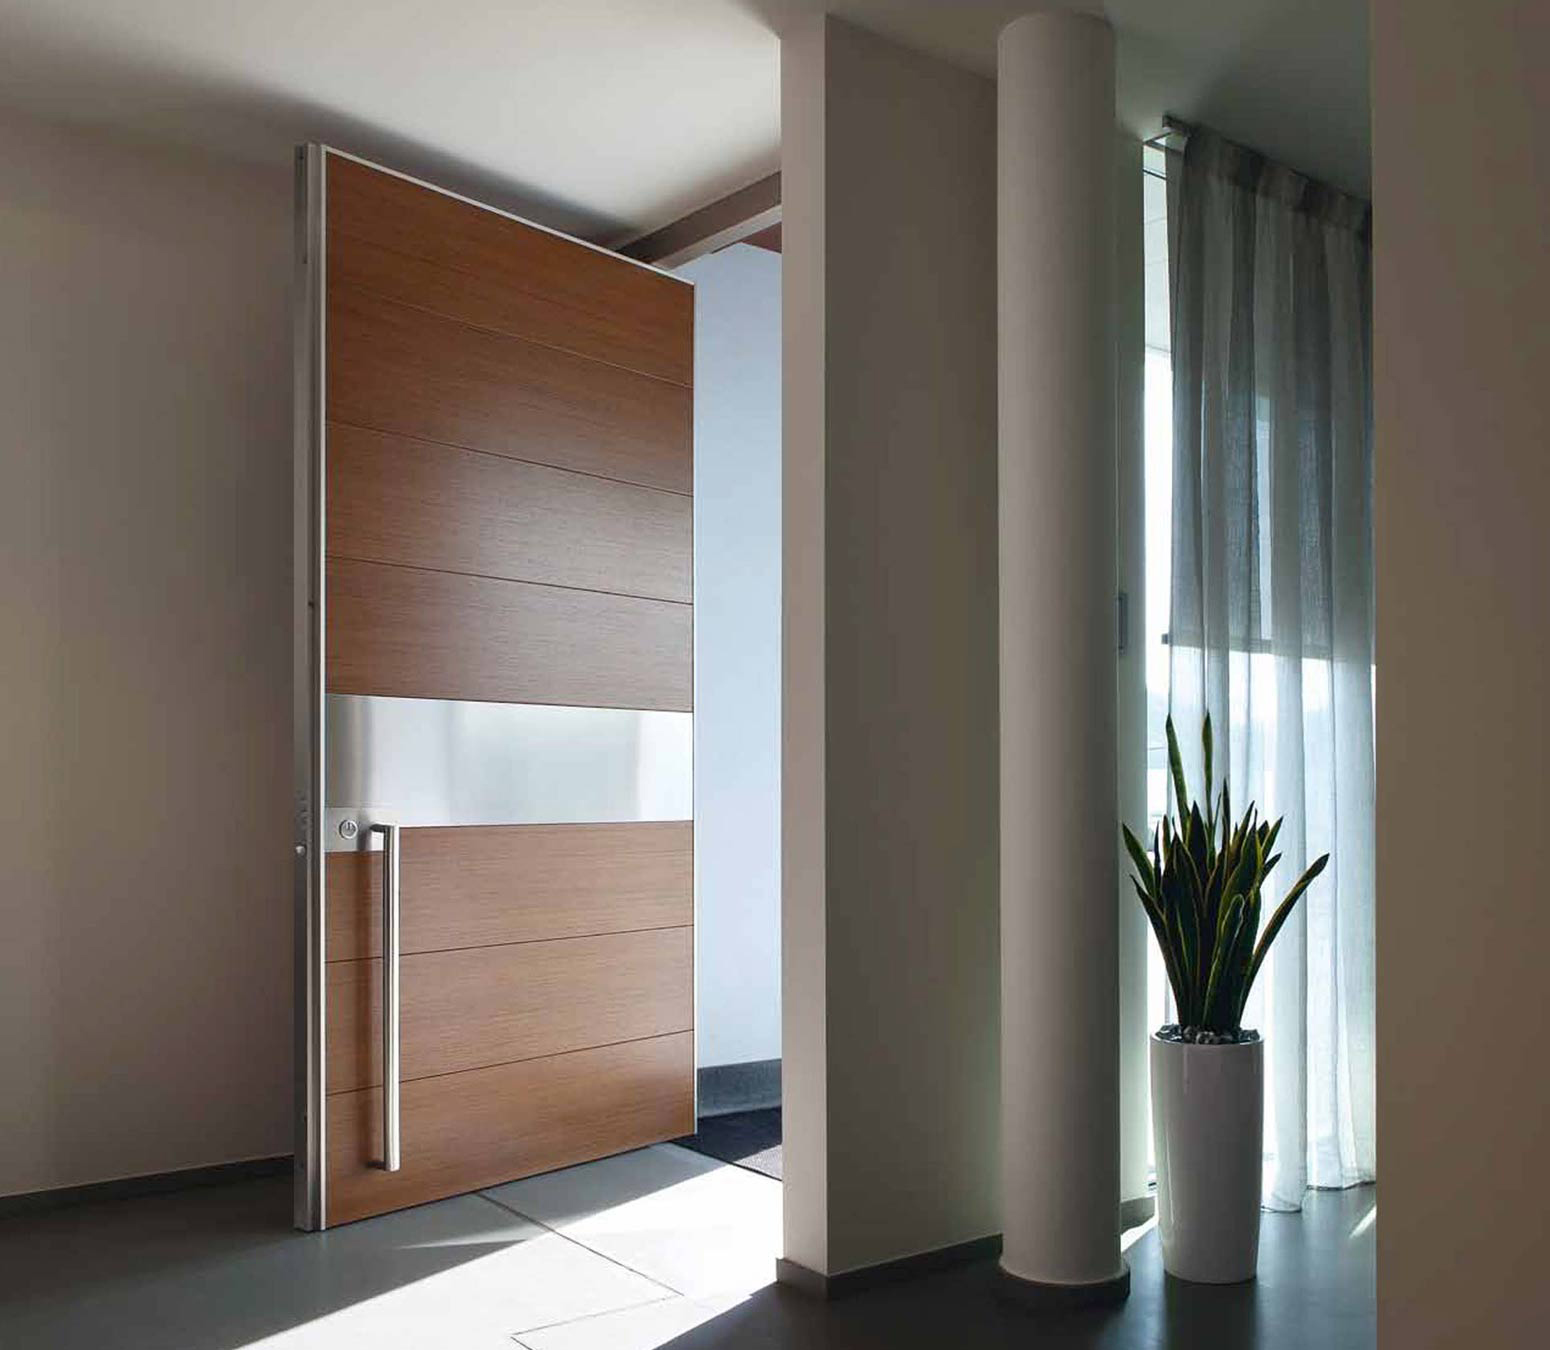 Contemporary + Architrave; Contemporary Architectural Security design & Synua: Pivot Security Door | Oikos Doors | Bluebell pezcame.com